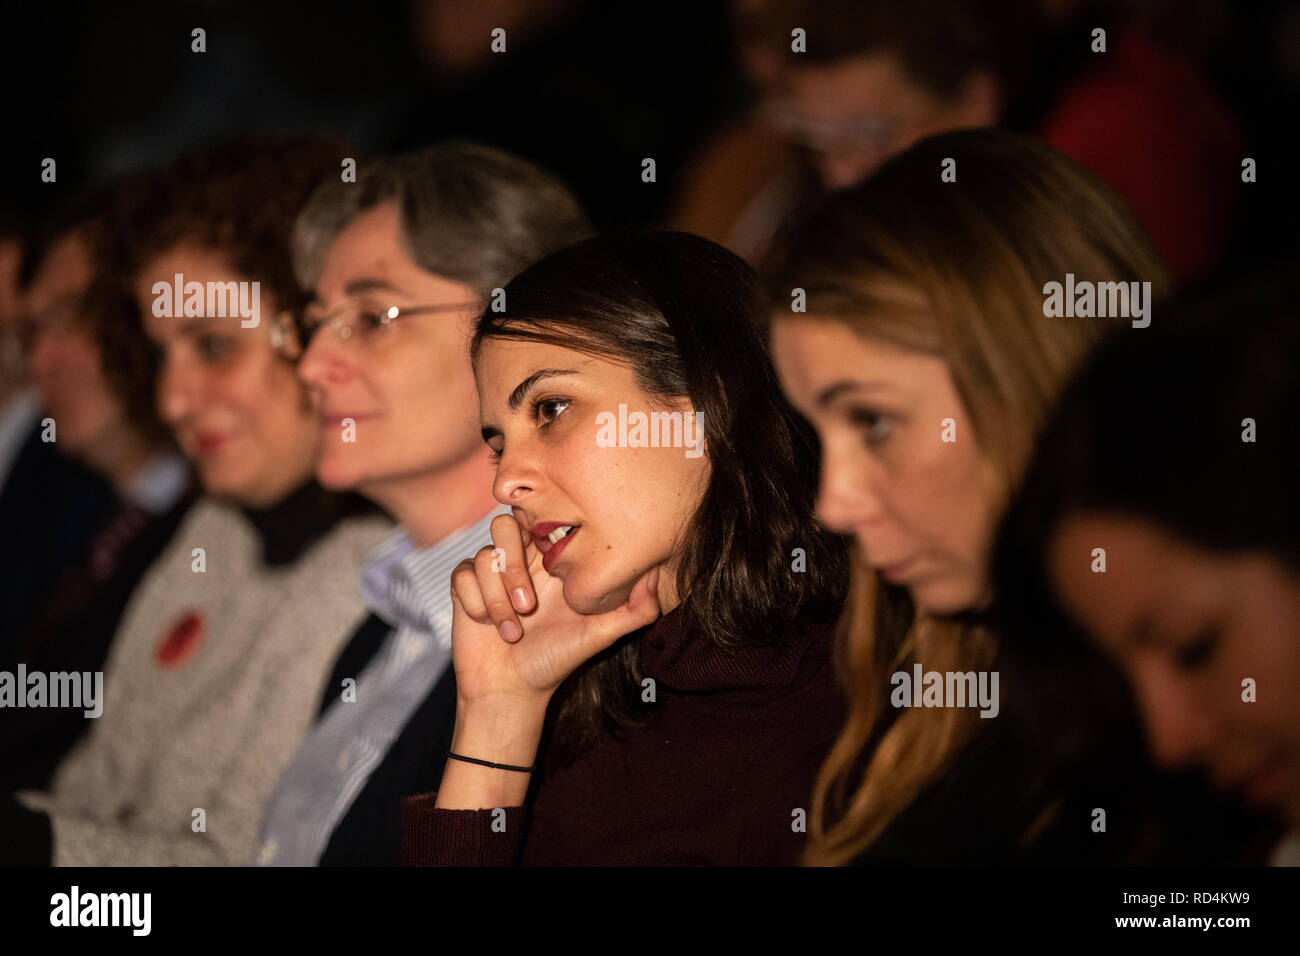 Madrid, Spain. 17th Jan 2019. Rita Maestre, councilor of the Madrid City Council. The Carabanchel Film Week has become one of the longest-running exhibitions in Madrid and has made it consolidate as the prelude to the Goya Awards. Credit: Jesús Hellin/Alamy Live News - Stock Image